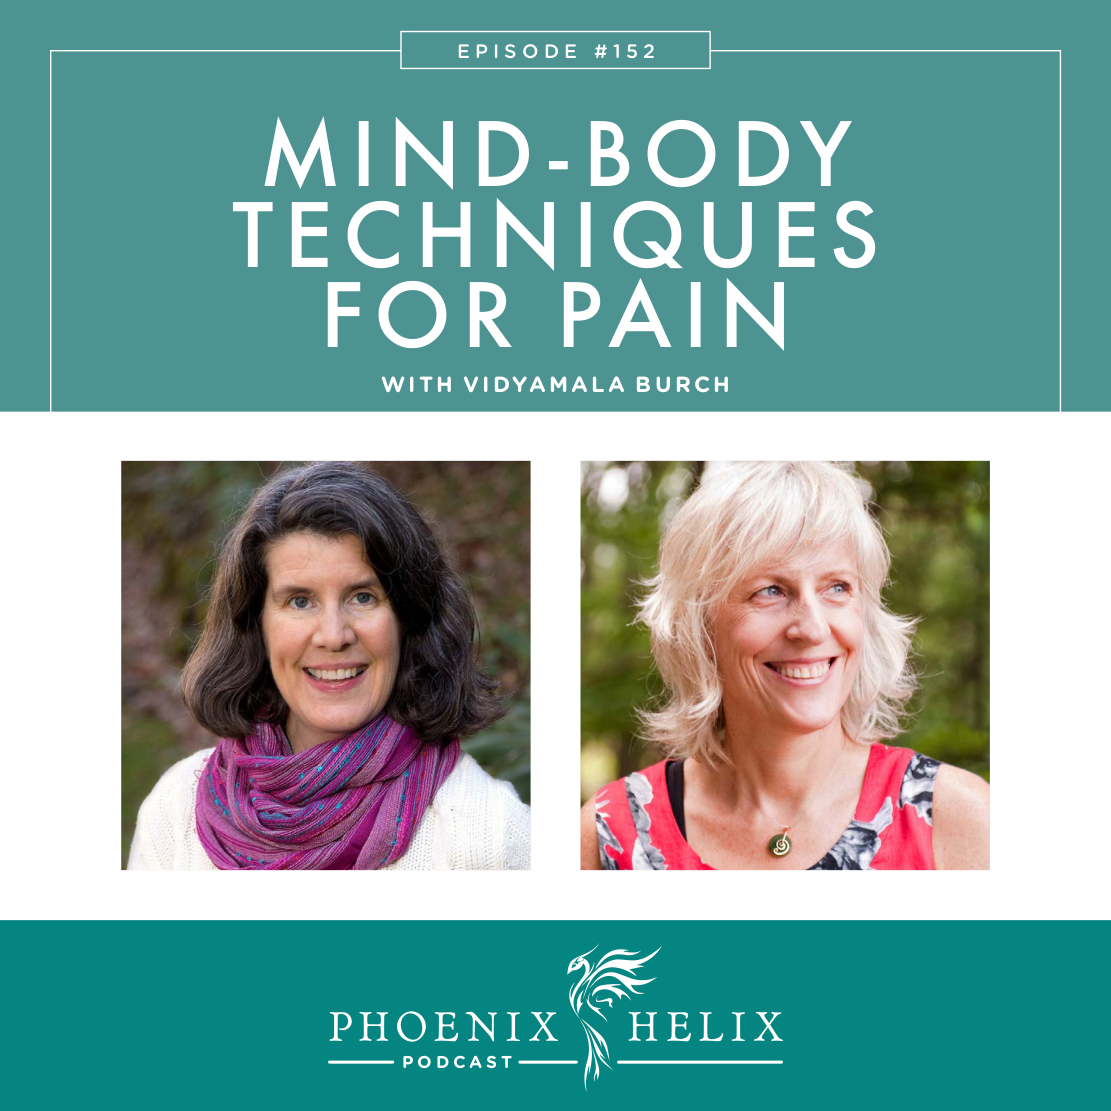 Mind-Body Techniques for Pain with Vidyamala Burch | Phoenix Helix Podcast